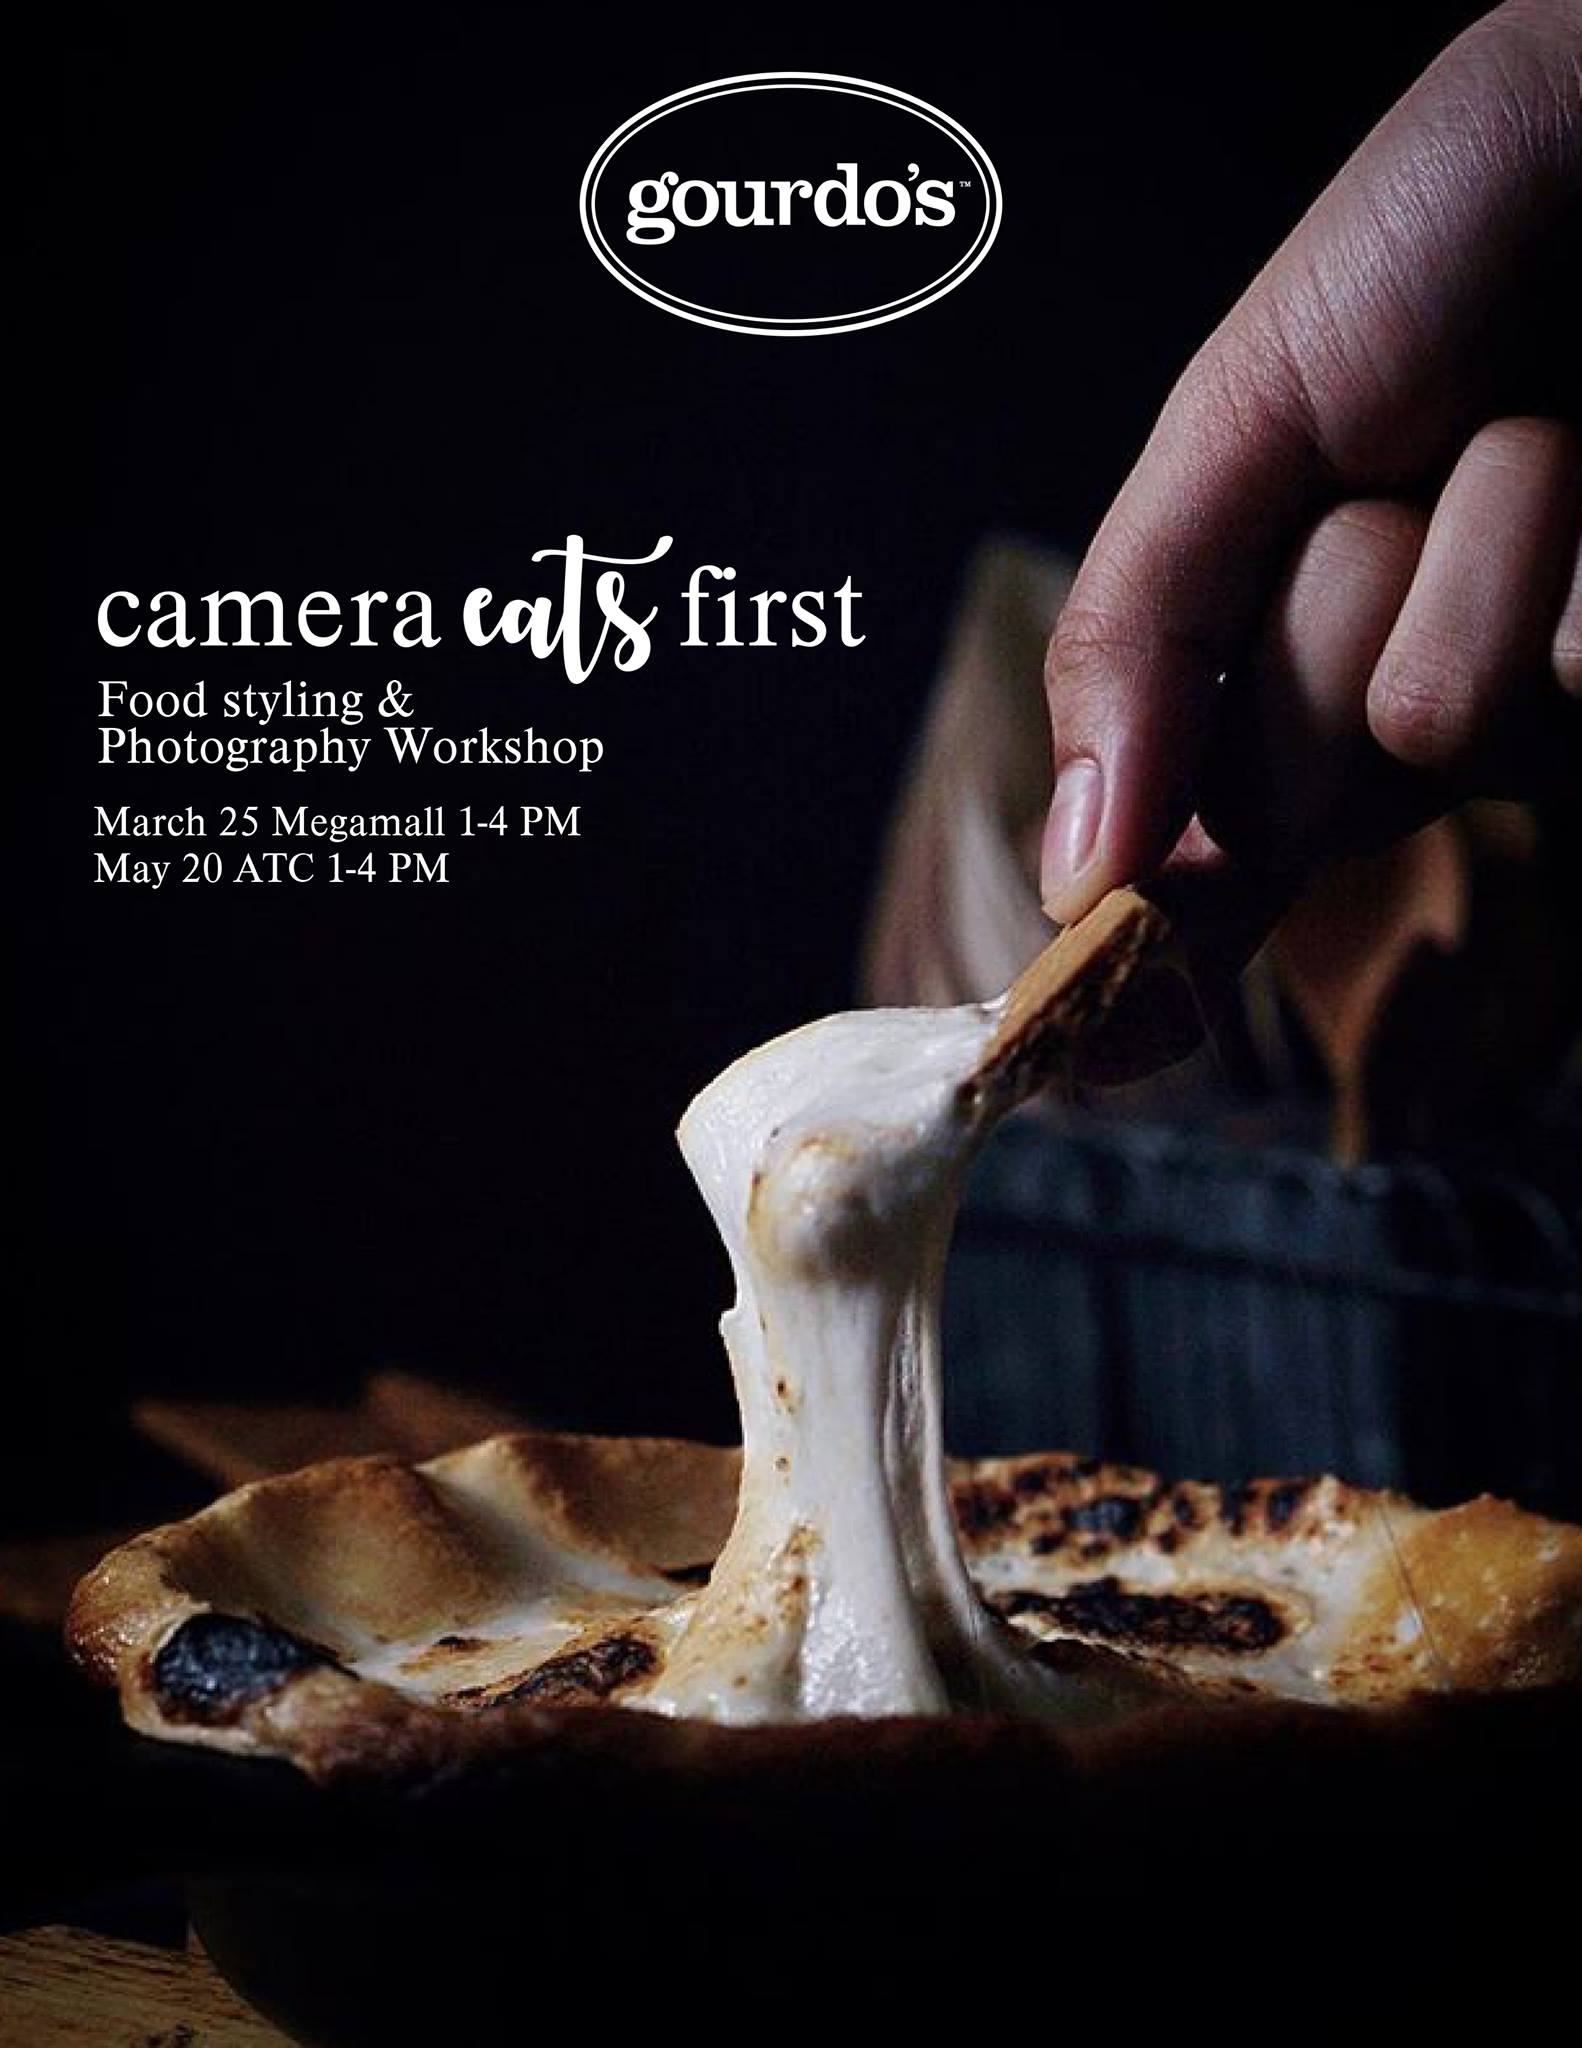 Camera Eats First, Food Styling & Photography Workshop at @Gourdos.